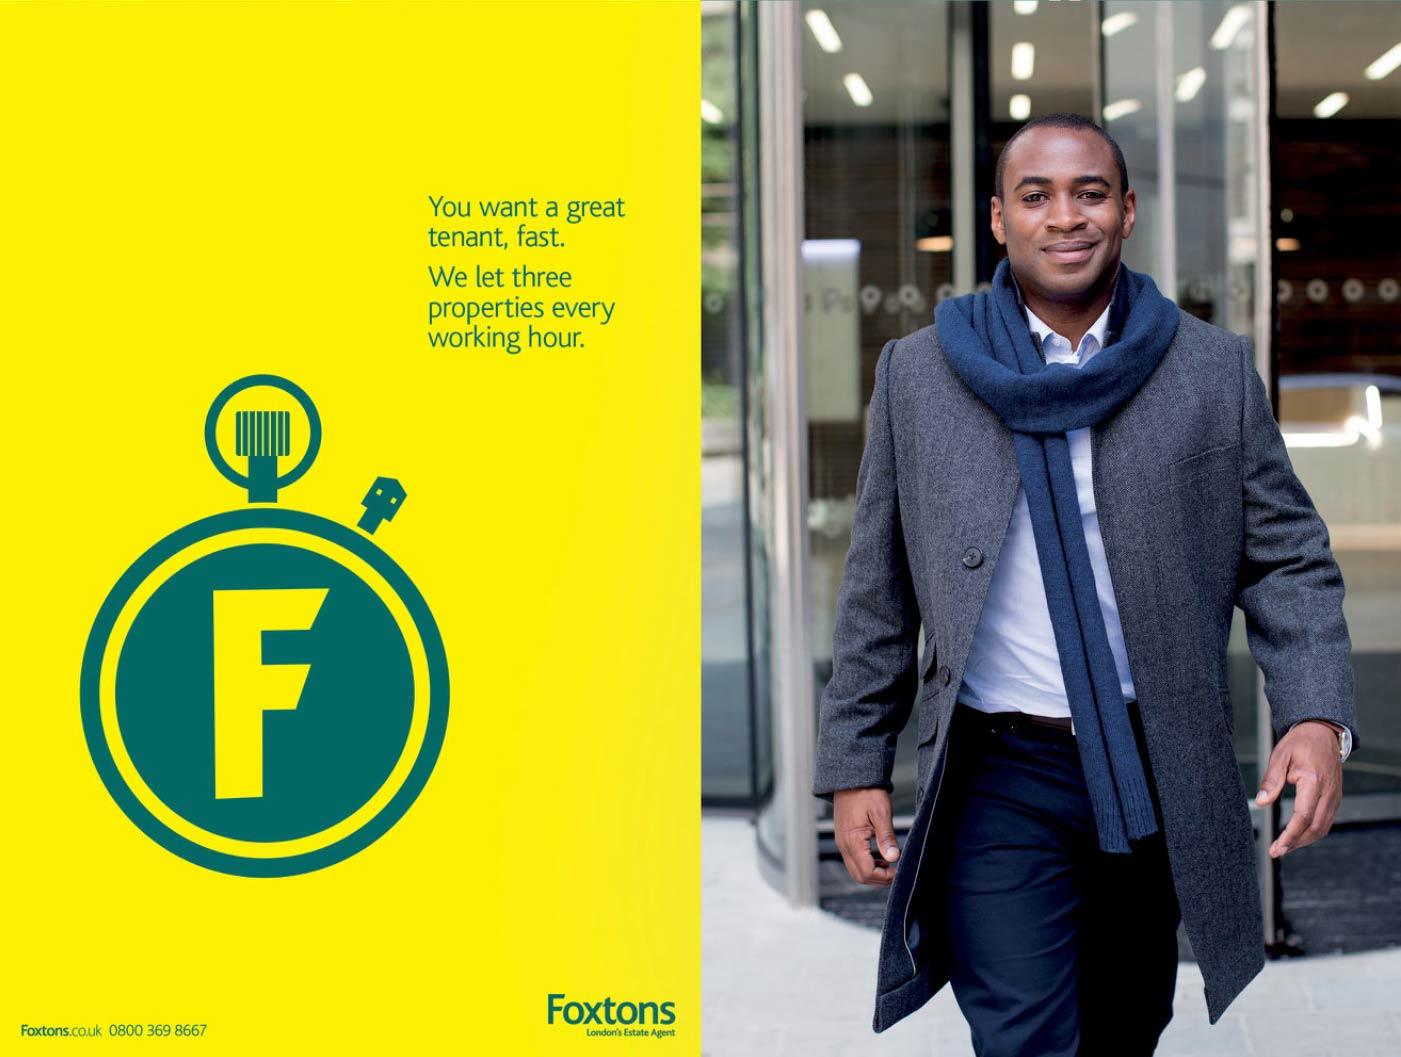 foxtons-advertising-portraits-3